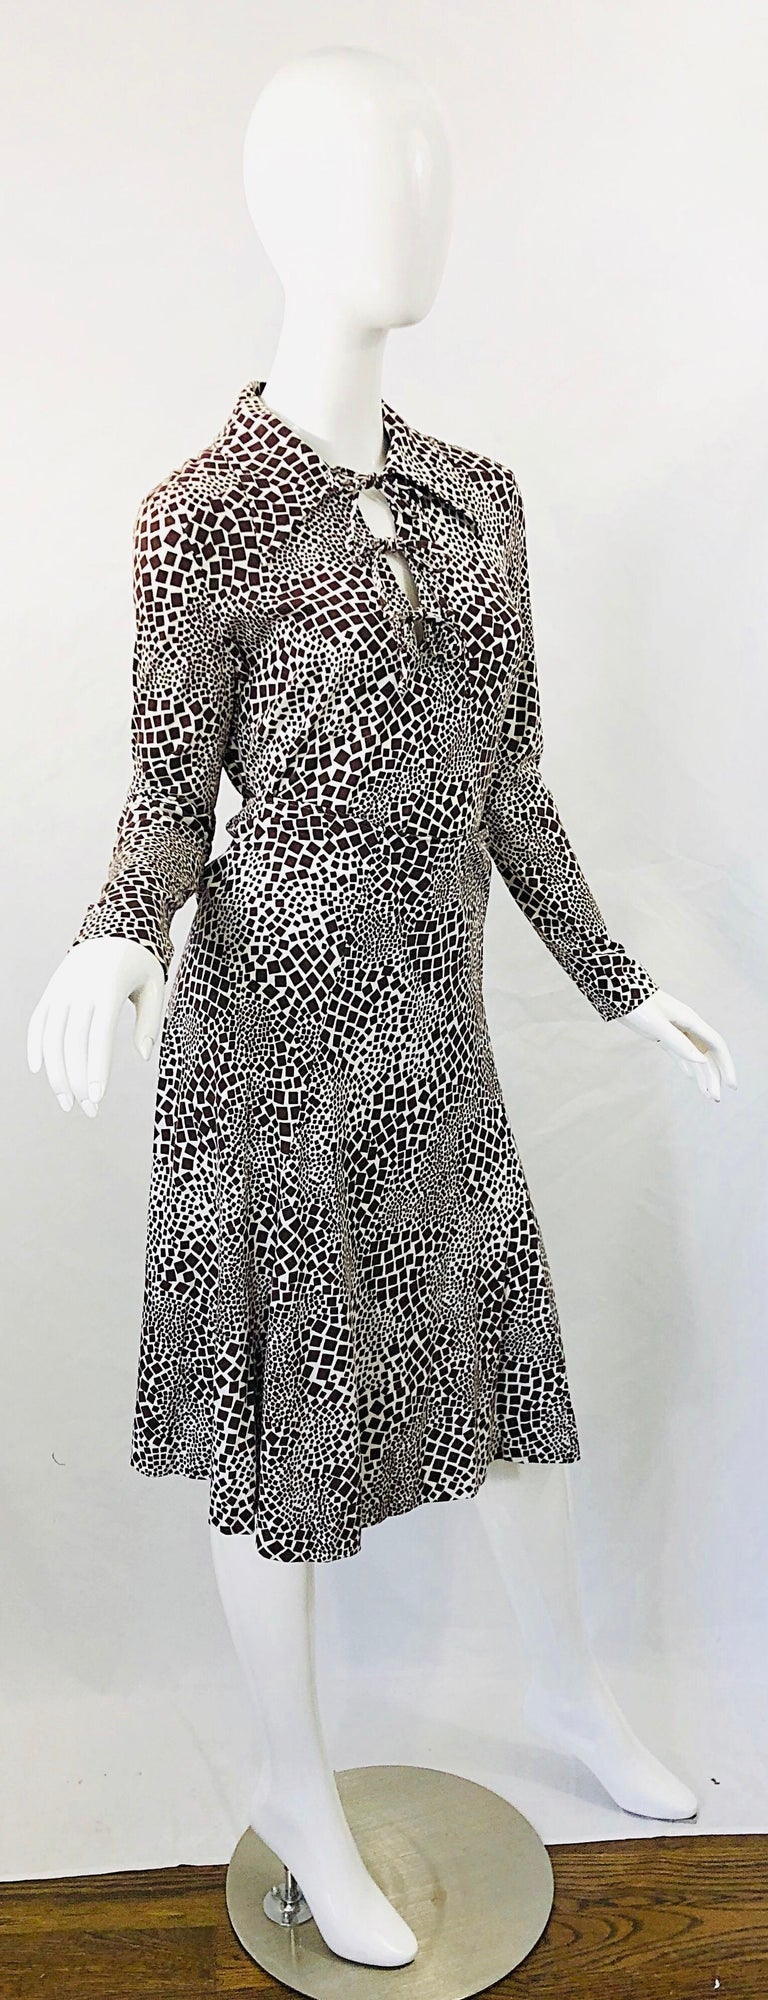 1970s Diane Von Furstenberg Brown and White Rayon Cotton Cut Out Top Skirt Dress For Sale 10